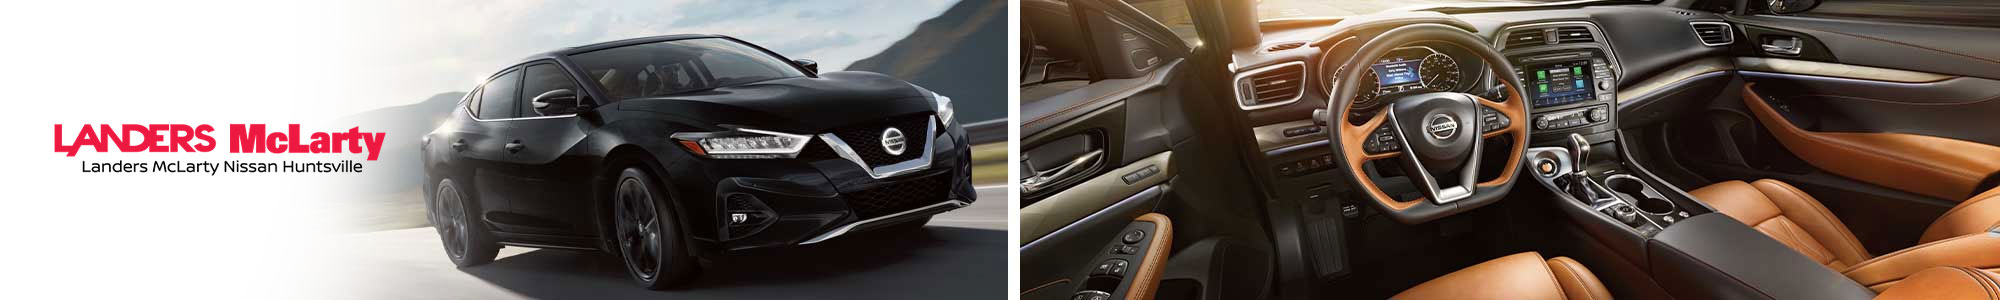 Our Alabama Nissan Dealer Has The Highly-Anticipated 2020 Maxima